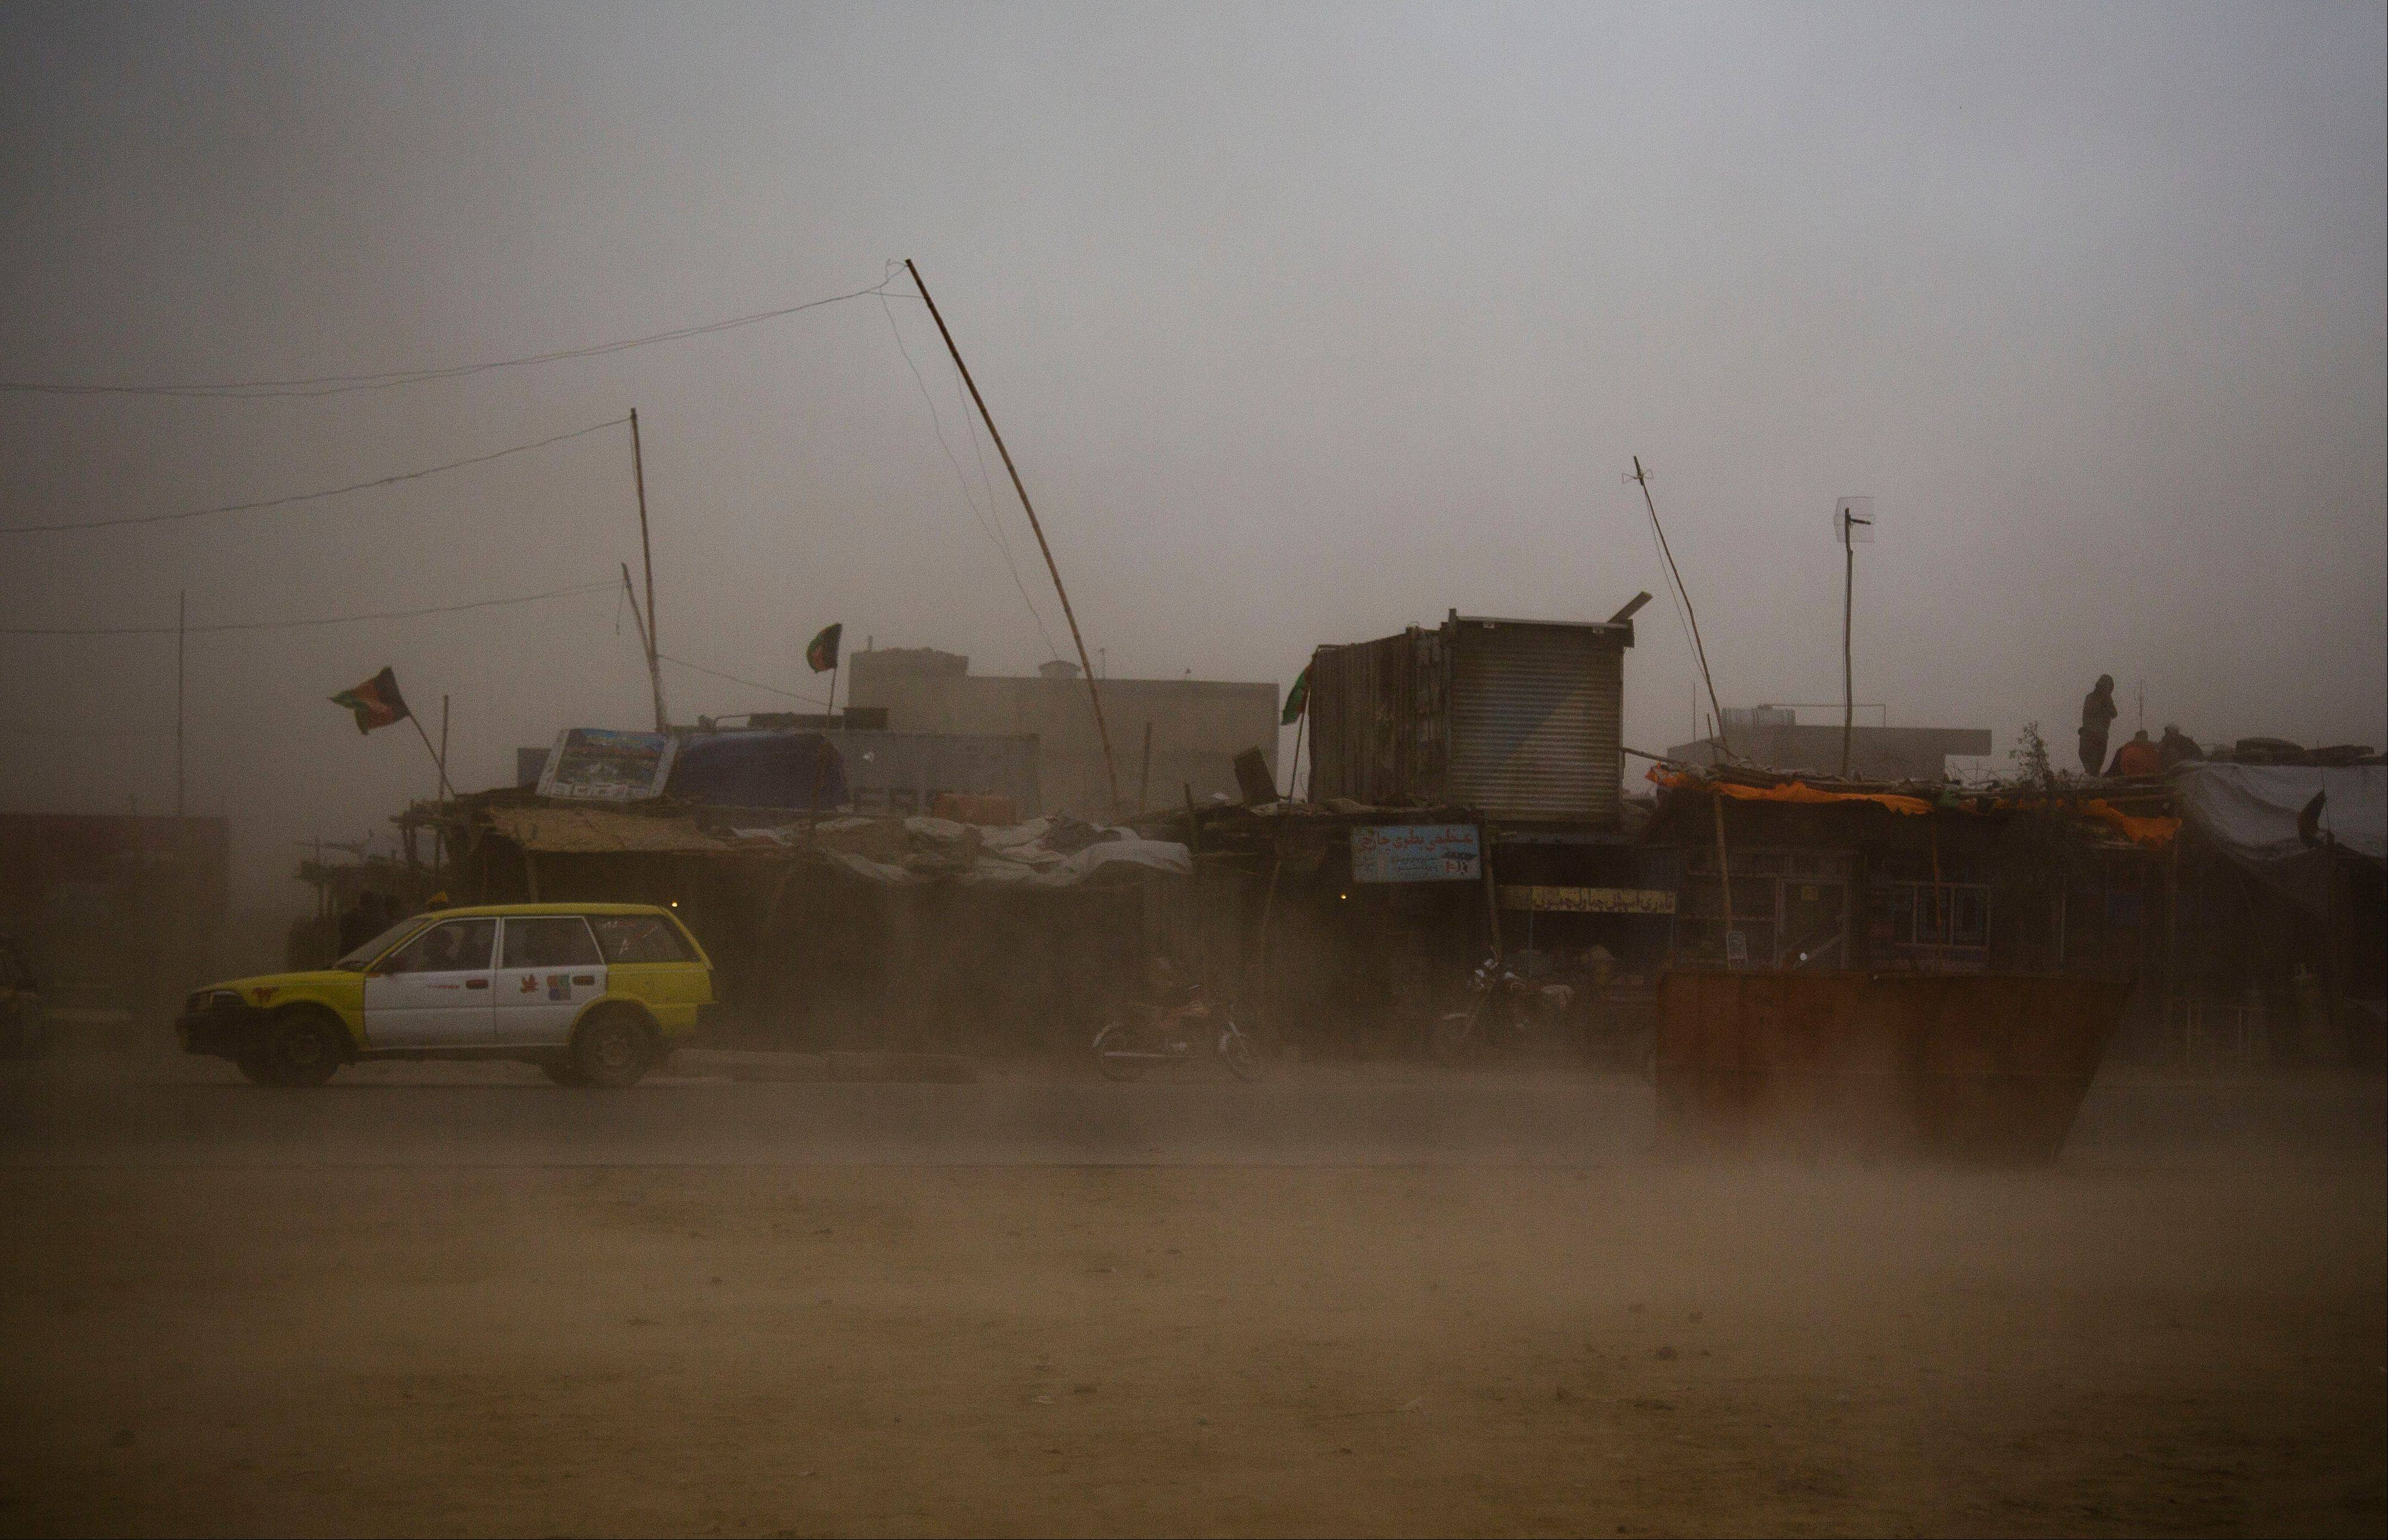 A taxi tries to make its way through a sandstorm that obscures the city of Kanadahar, Afghanistan, Sunday. A Turkish transport helicopter carrying at least 11 civilians was forced to make an emergency landing in a Taliban-controlled area in eastern Afghanistan, and the insurgents took all the people on board prisoner, including eight Turks and a Russian, officials said Monday.